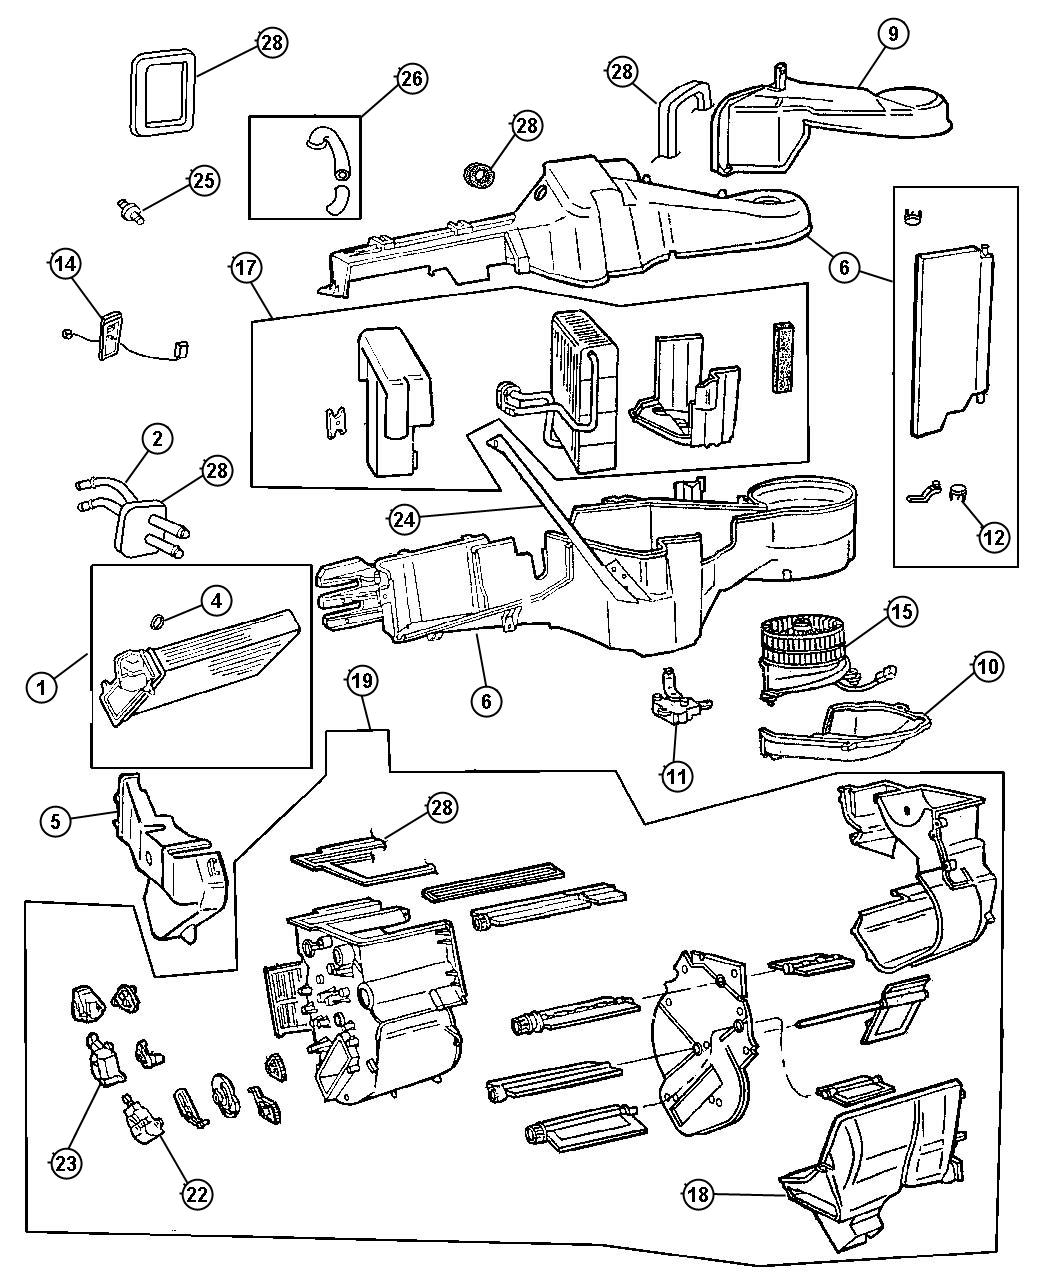 Trane Ycd 060 Wiring Diagram : 28 Wiring Diagram Images